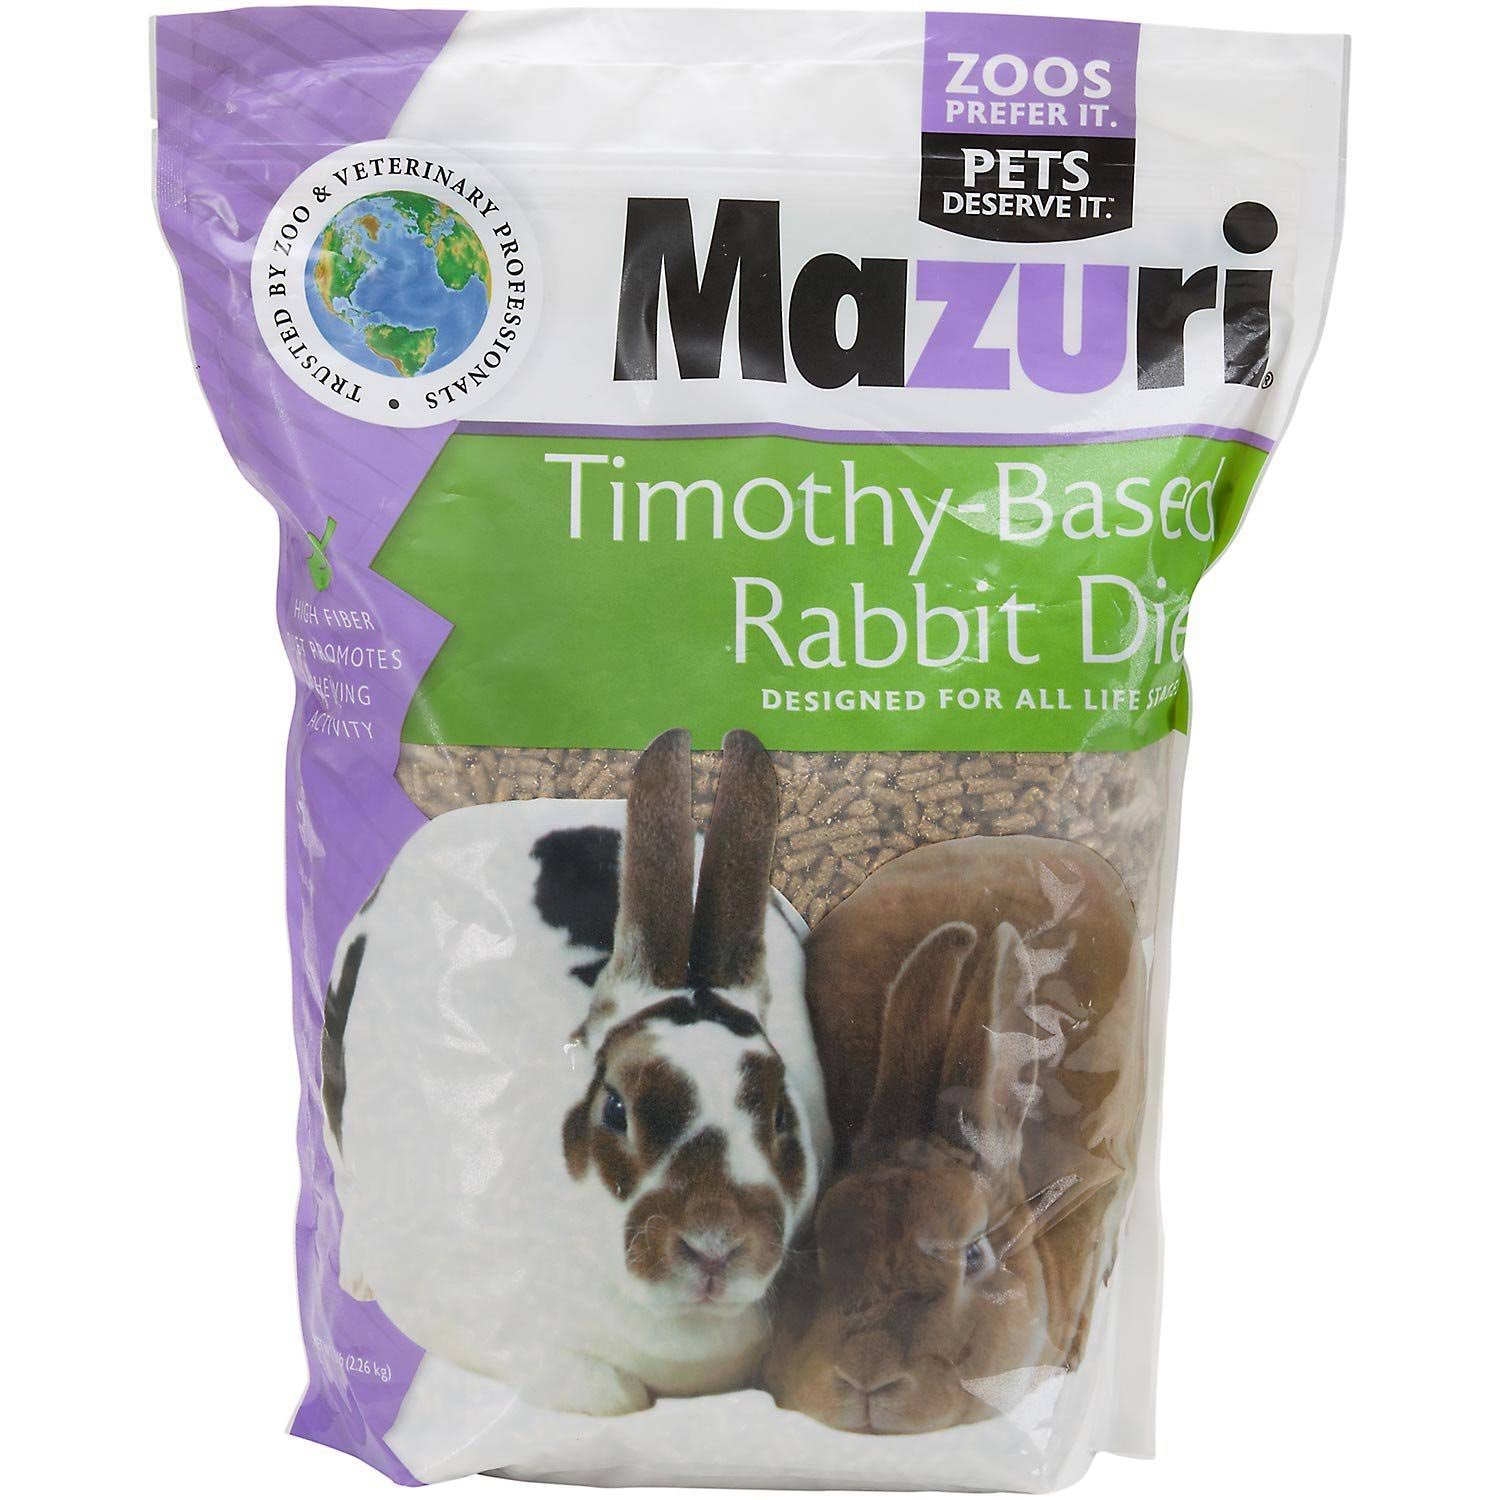 Mazuri Timothy-Based Rabbit Food, 5 lbs.